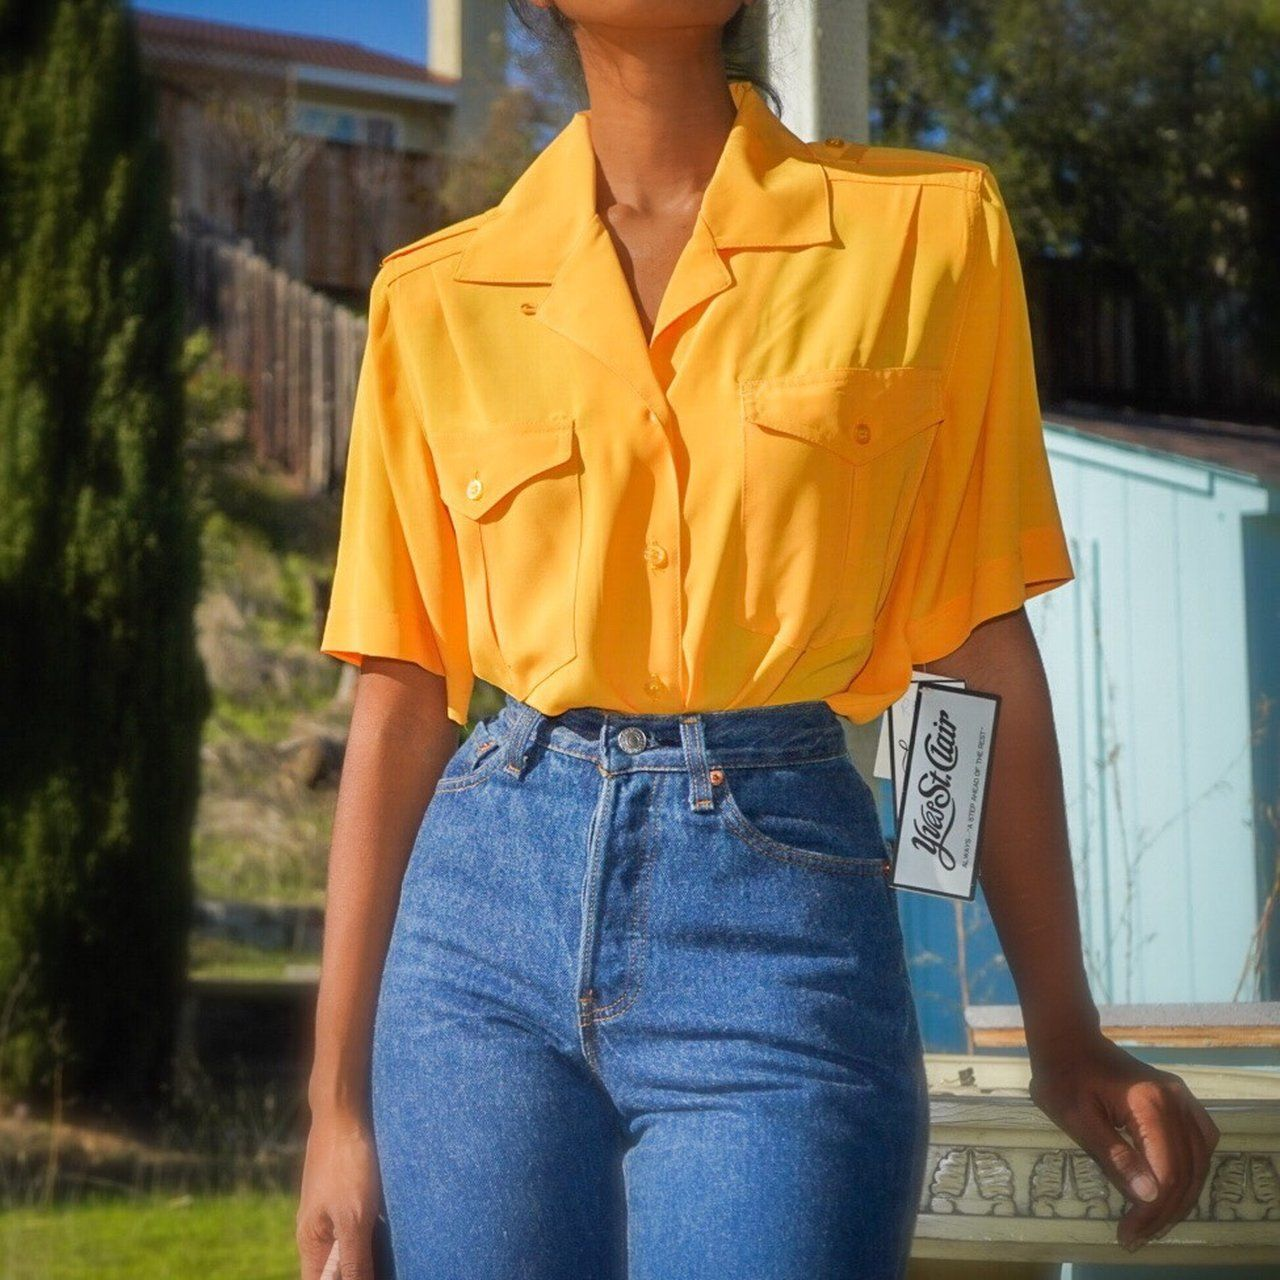 db2a6453c Vtg 80s golden yellow silky polyester safari shirt by Yves St. Clair. ♢  Button down front with 2 breast pockets and short sleeves.